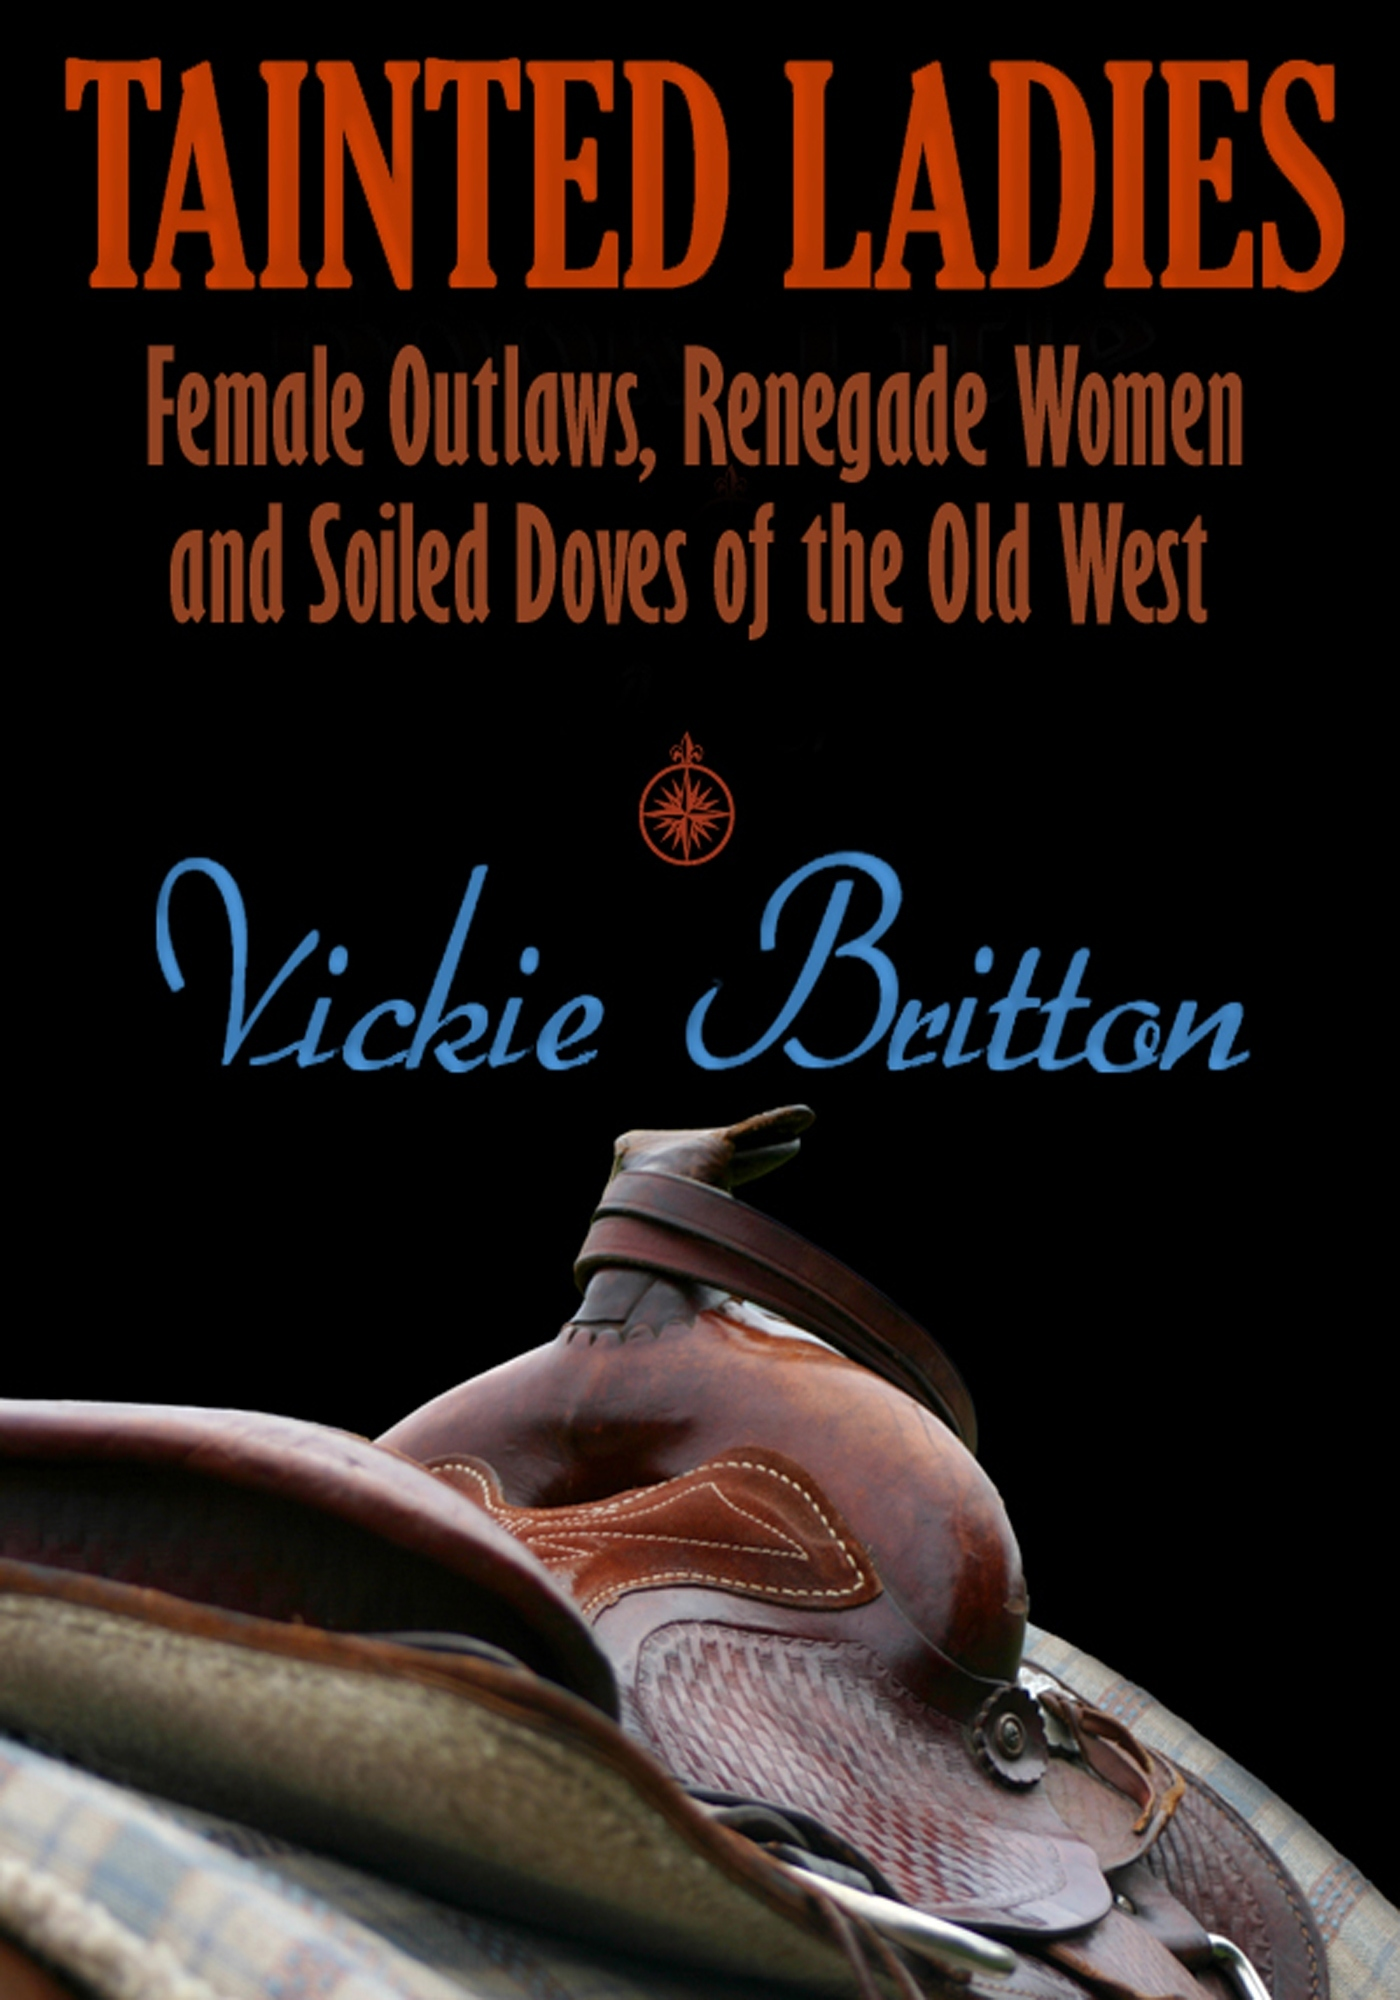 Tainted Ladies: Female Outlaws, Renegade Women and Soiled Doves of the Old West